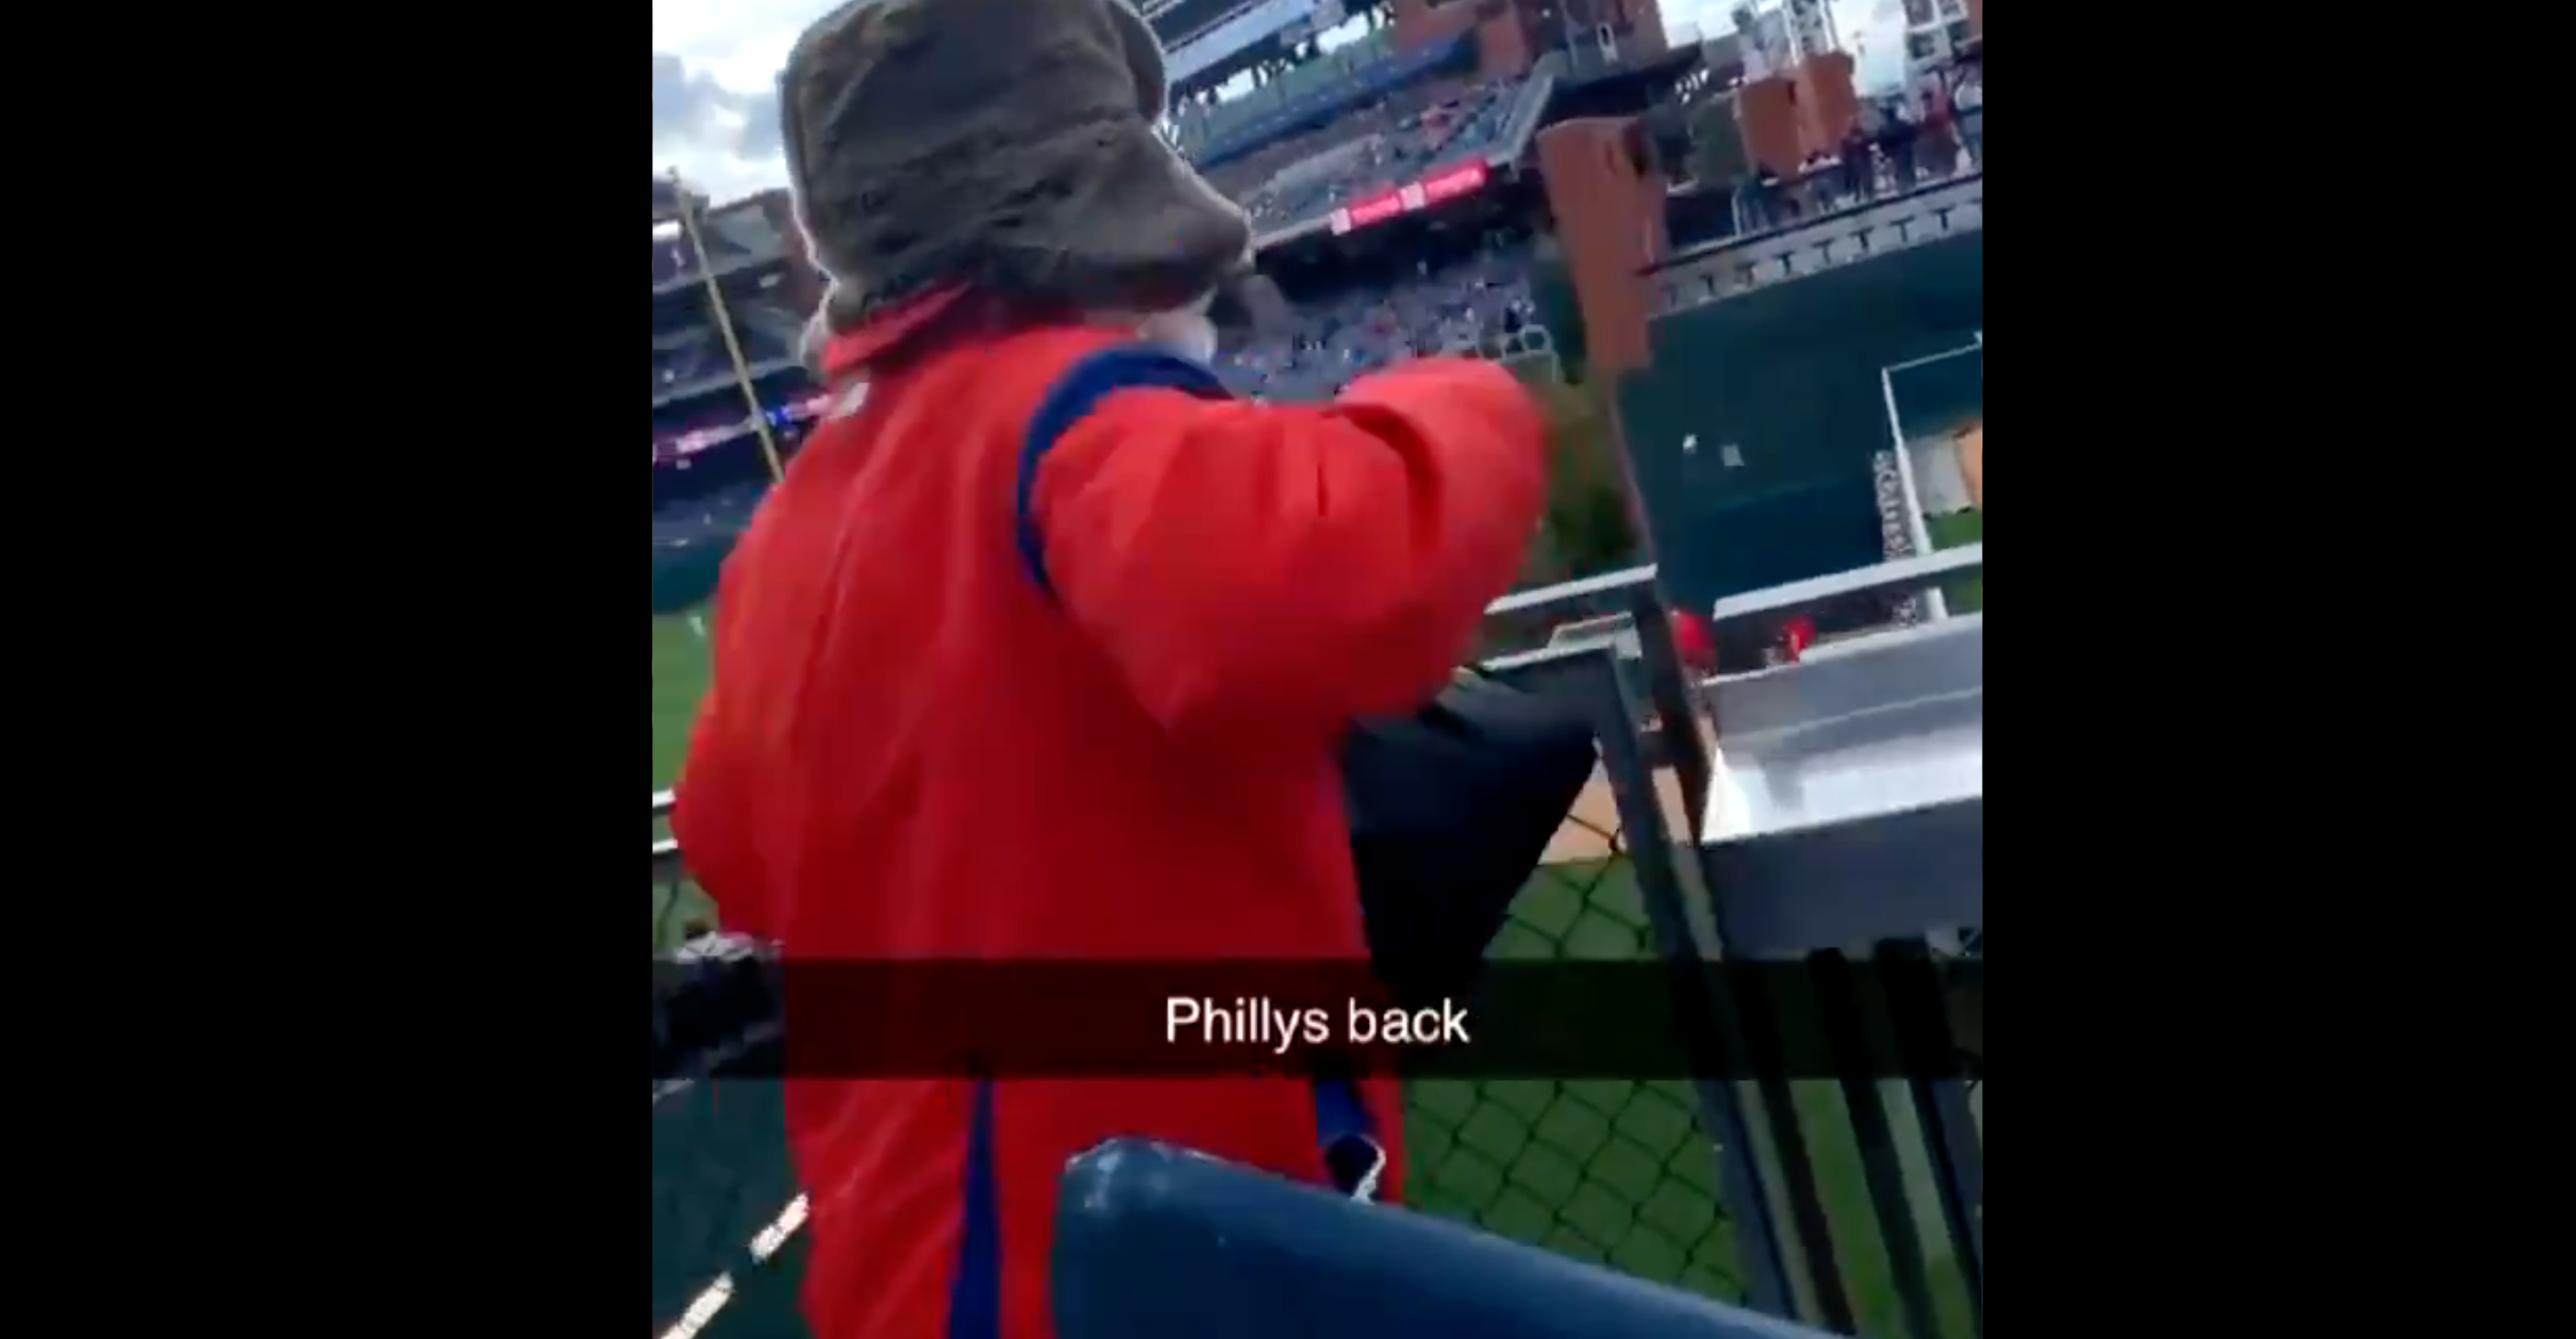 After Seeing This Video, I'm Confident The Phillies Are Going 162-0 (@DylanGrace28)